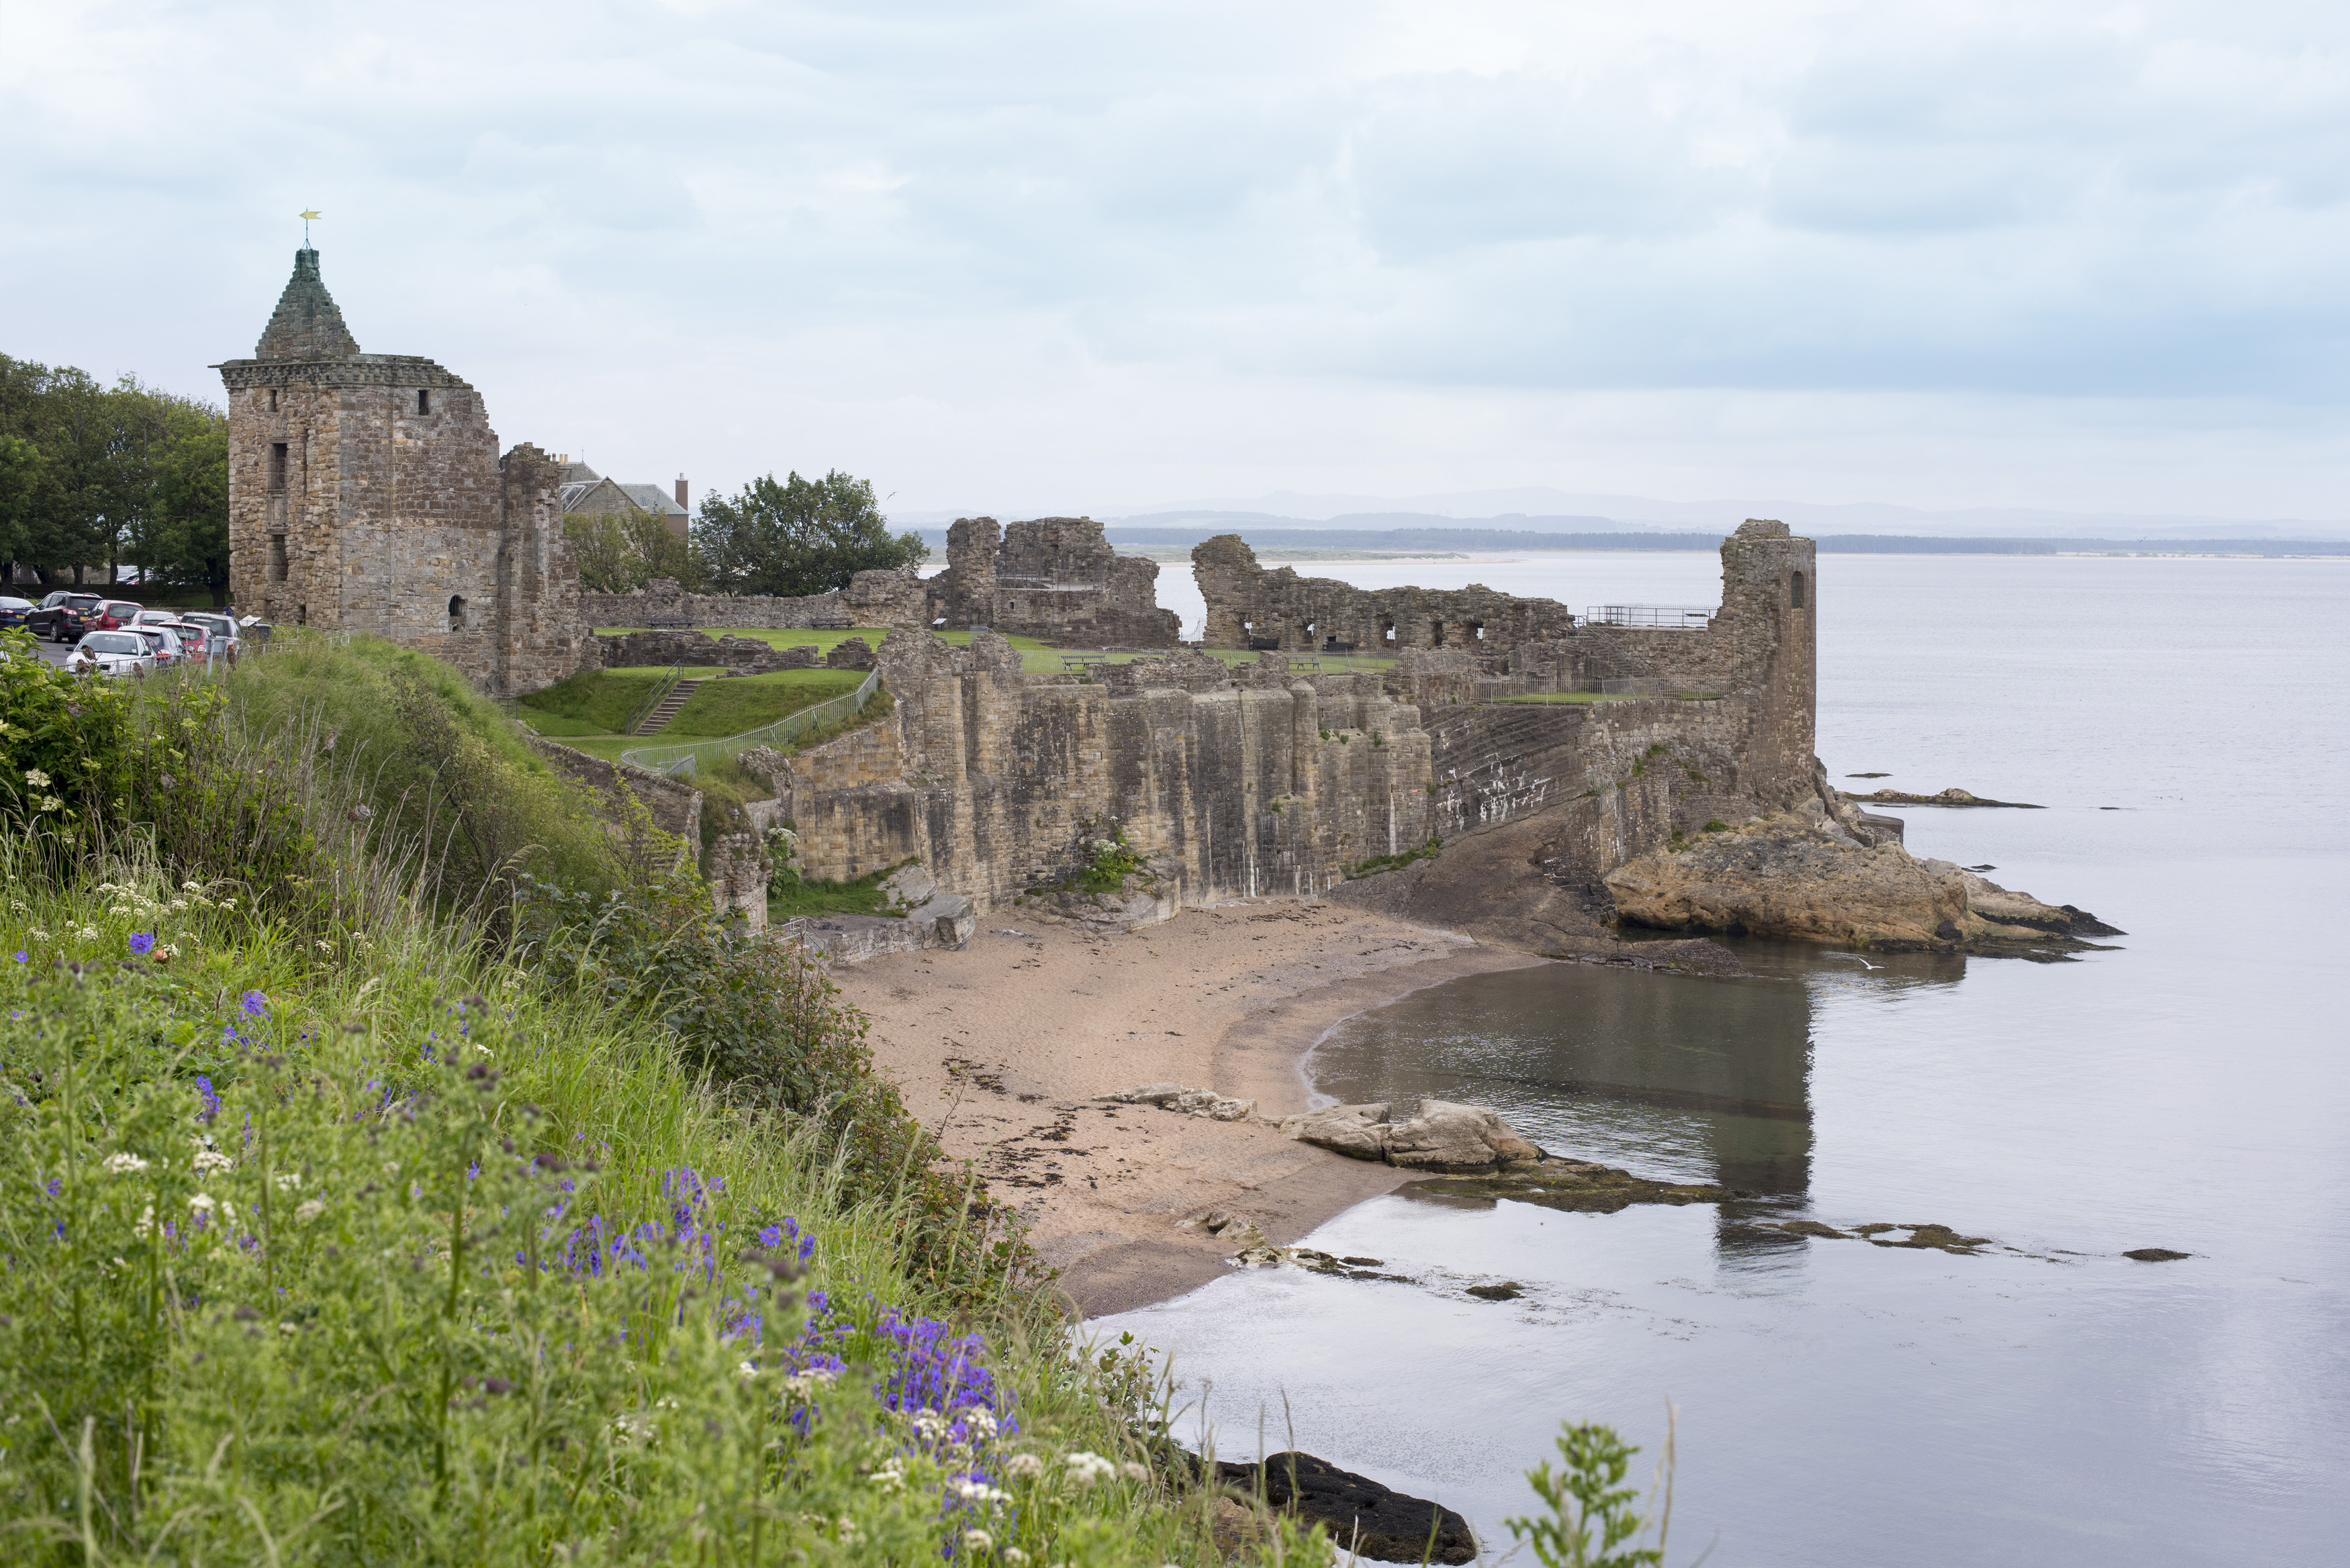 Shorefront ruins of old historic castle at the waters edge on the fife coast, in Saint Andrews, Scotland